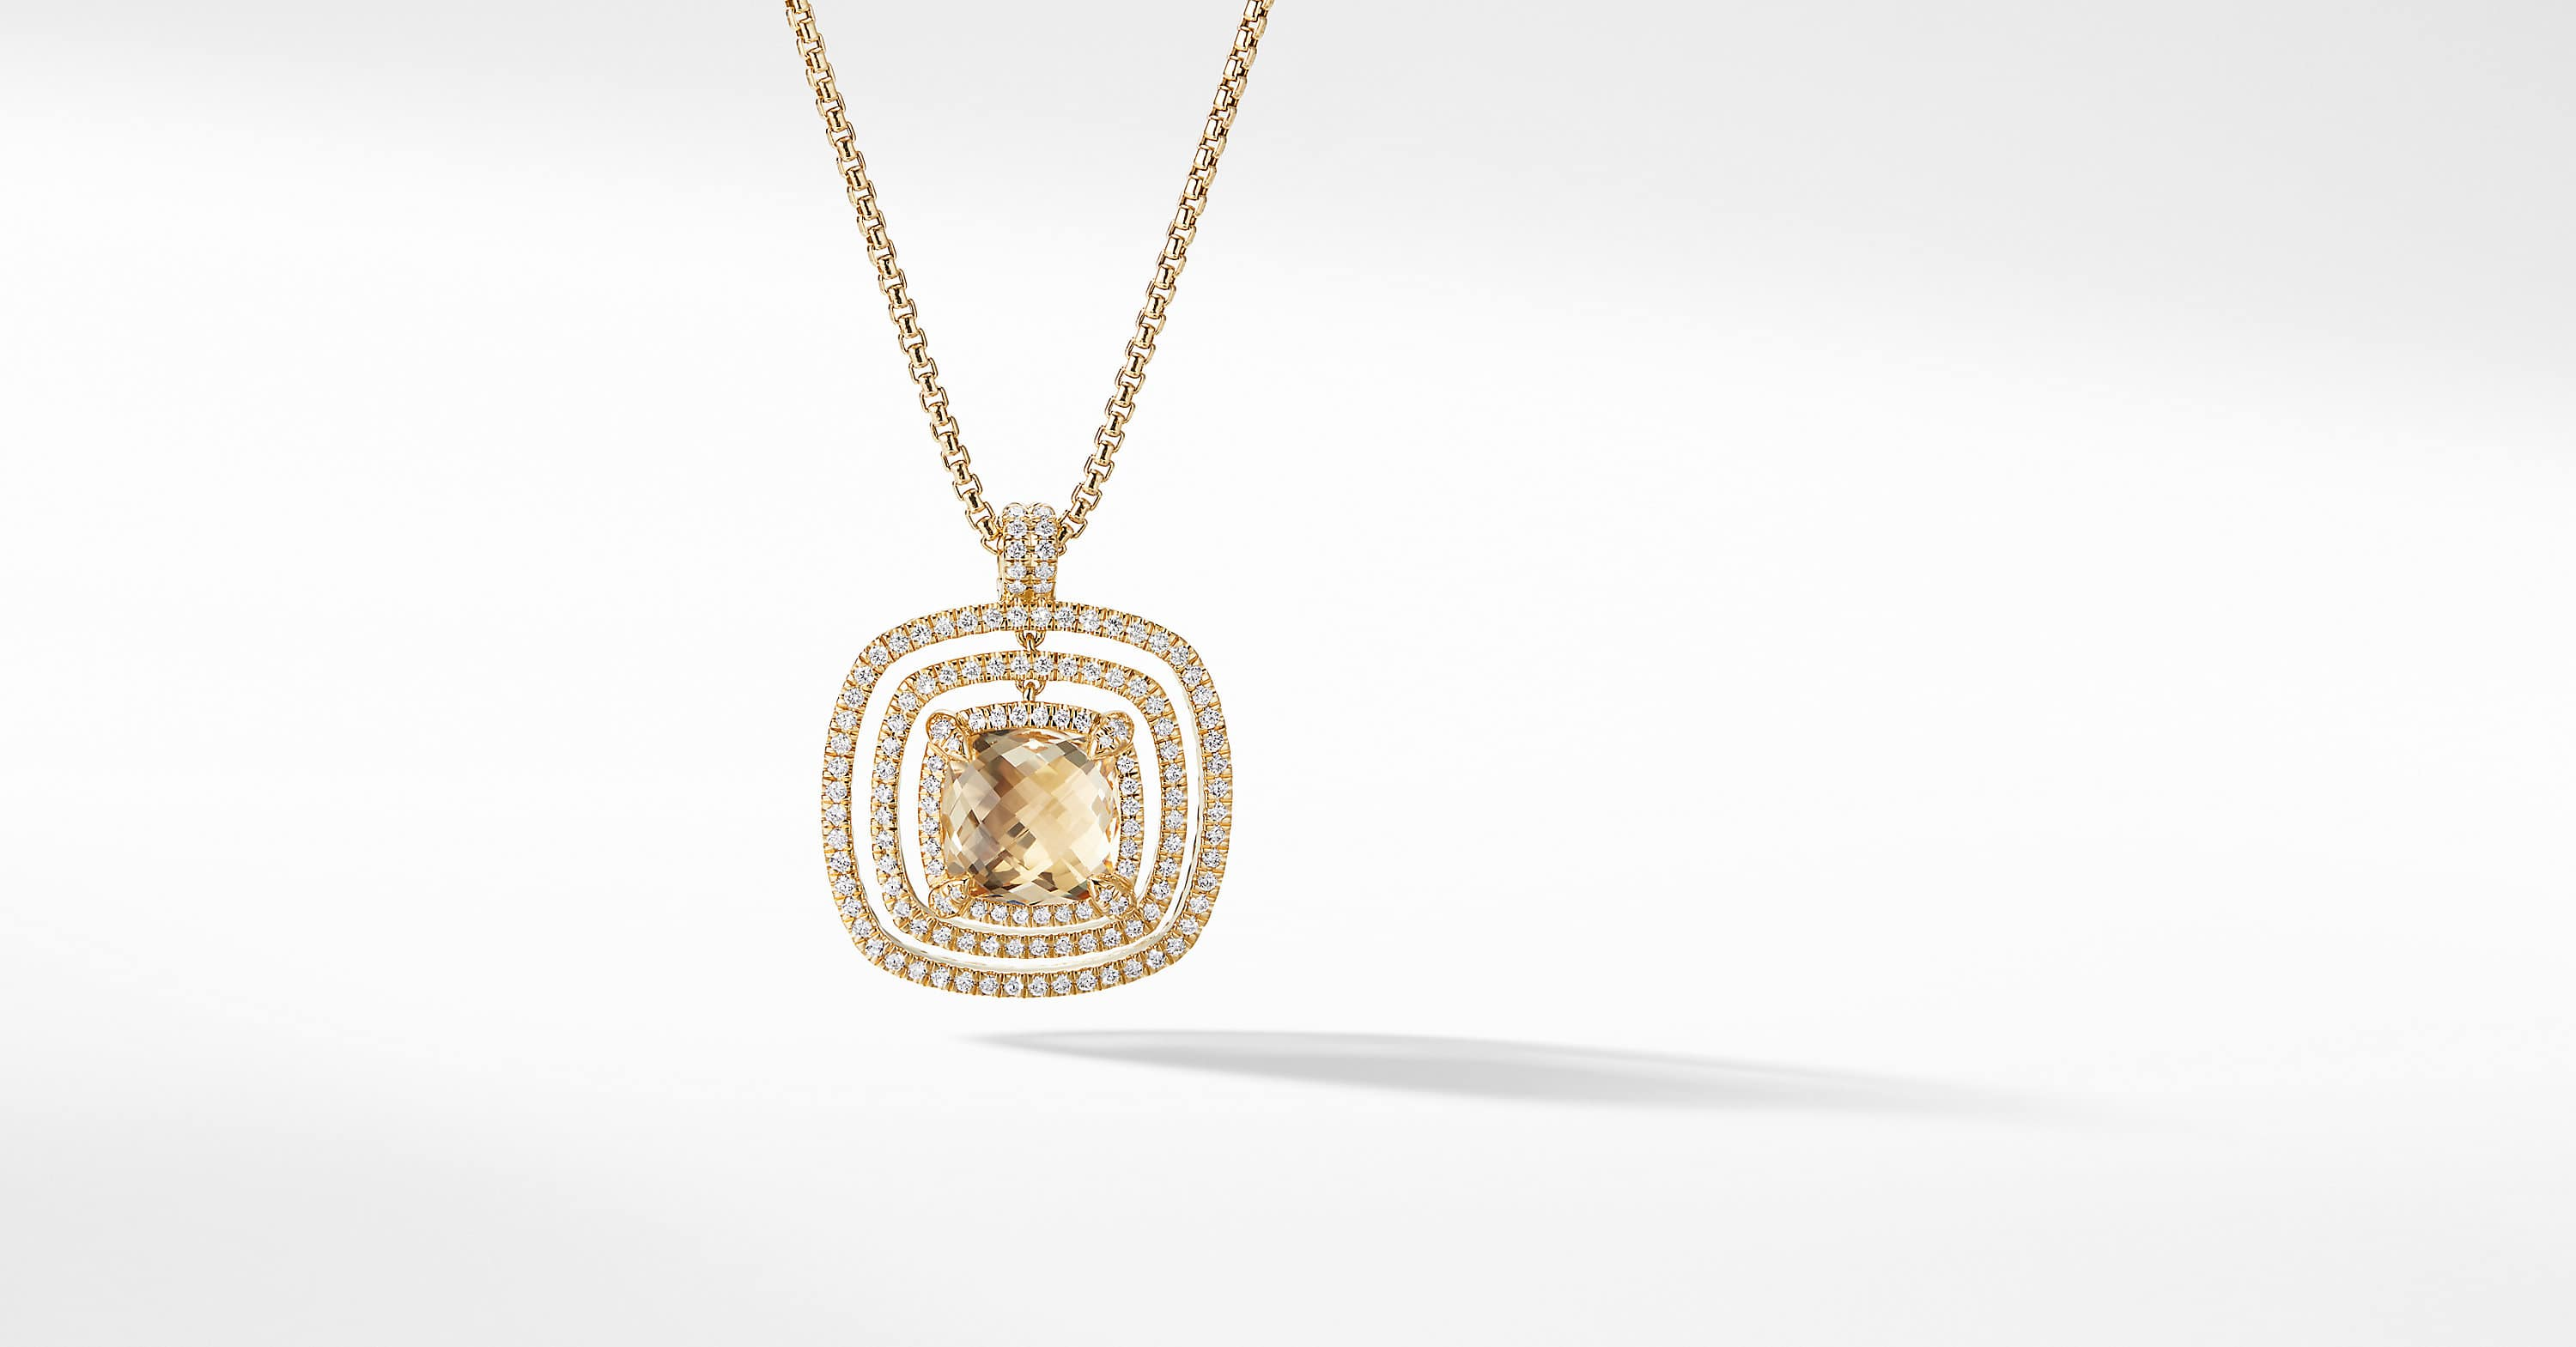 Chatelaine Pave Bezel Enhancer with Diamonds in 18K Gold, 26mm